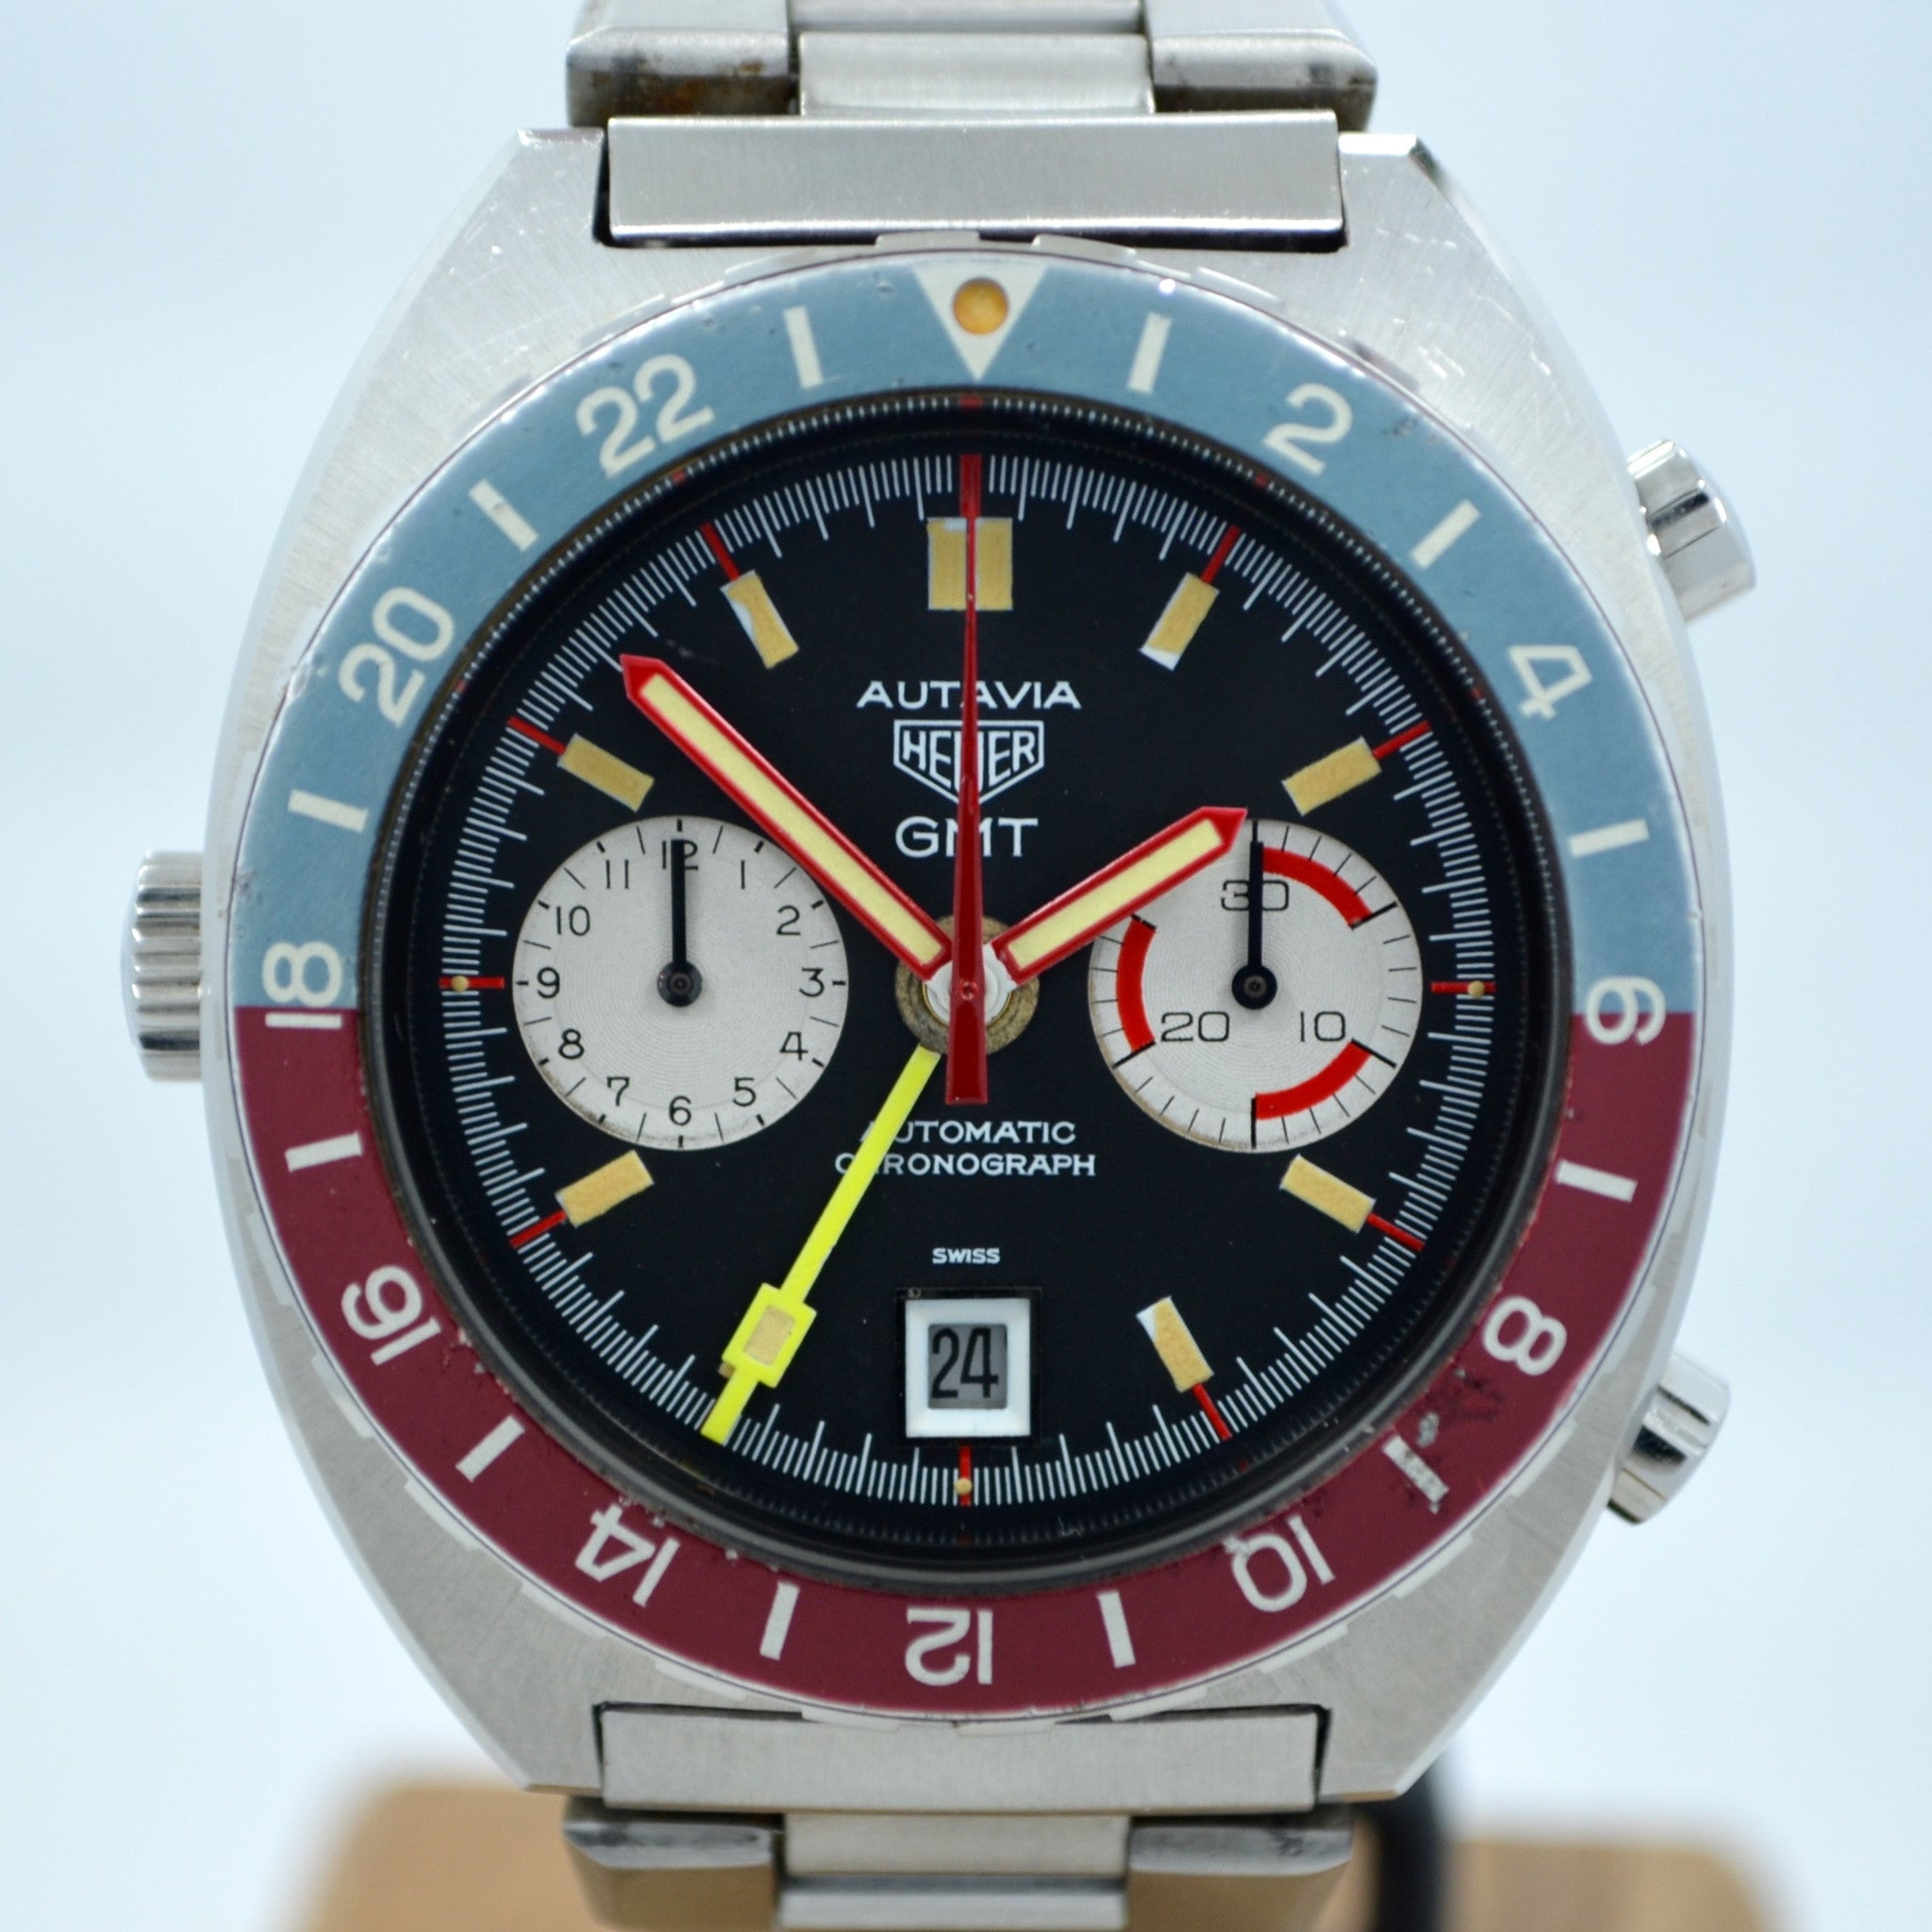 Vintage Heuer Autavia GMT 11630 Cal. 14 Automatic Steel Chronograph Wristwatch - Hashtag Watch Company